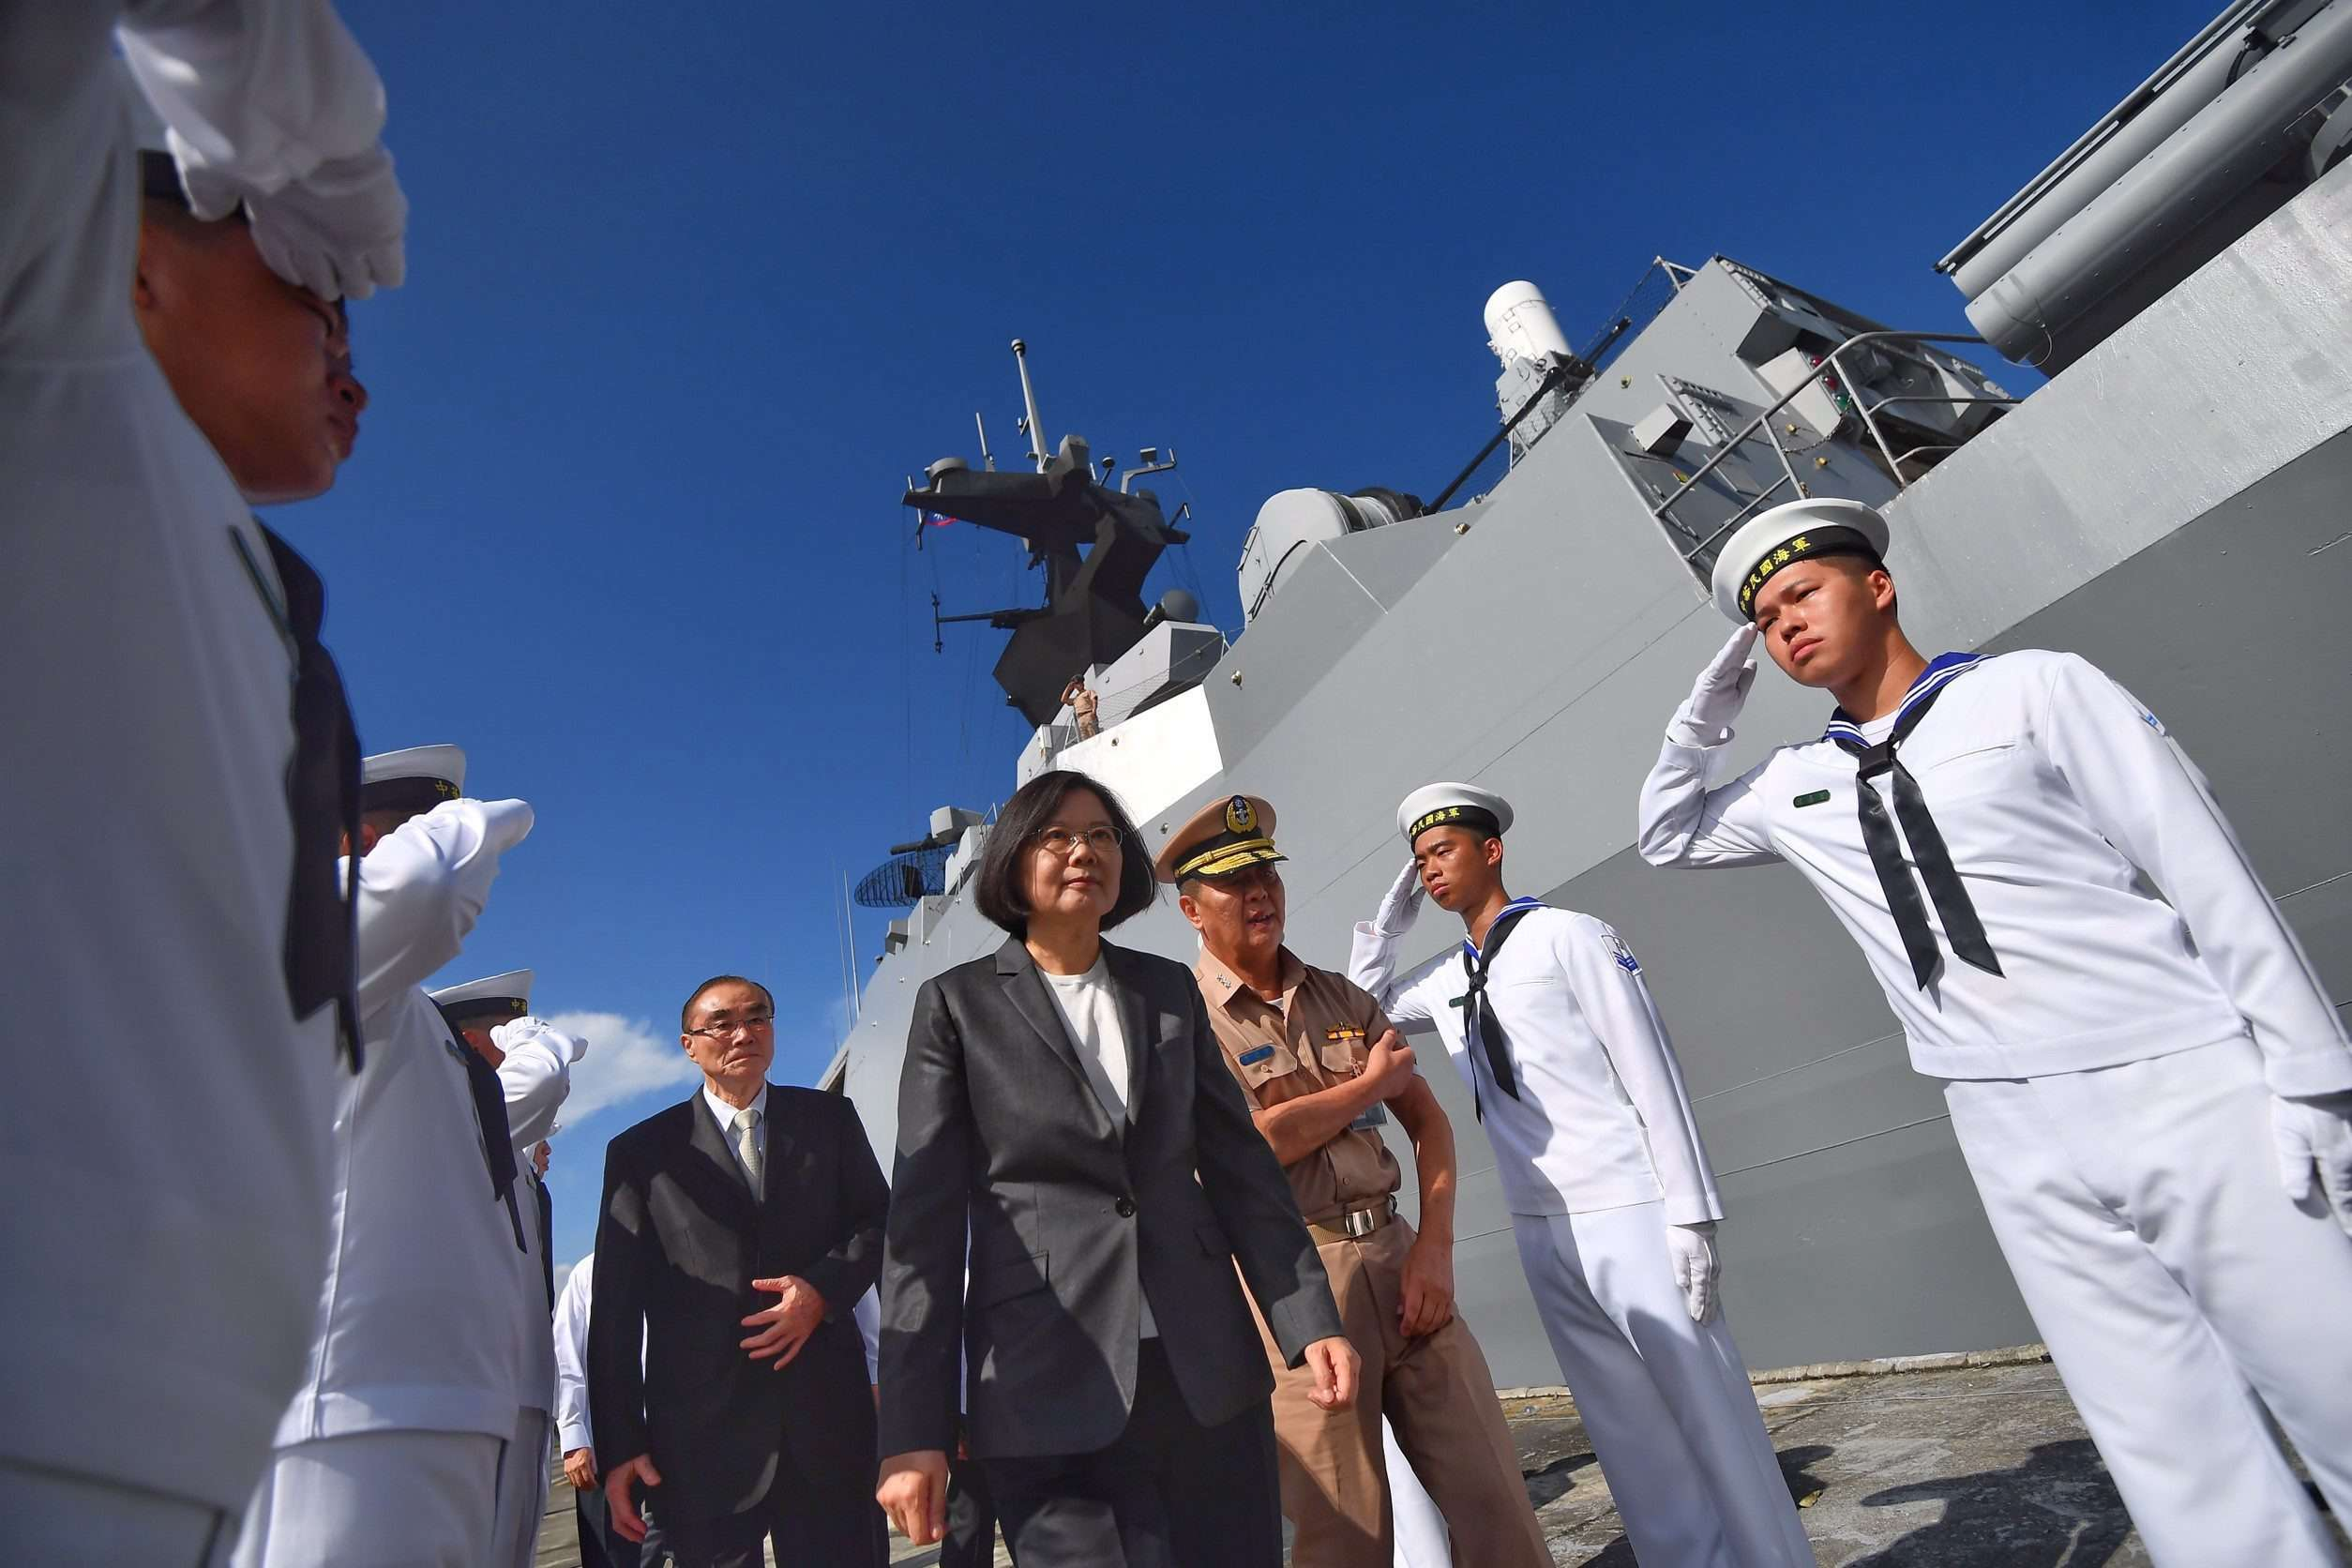 Tsai Ing-wen tells warship crew to defend Taiwan's interests as they